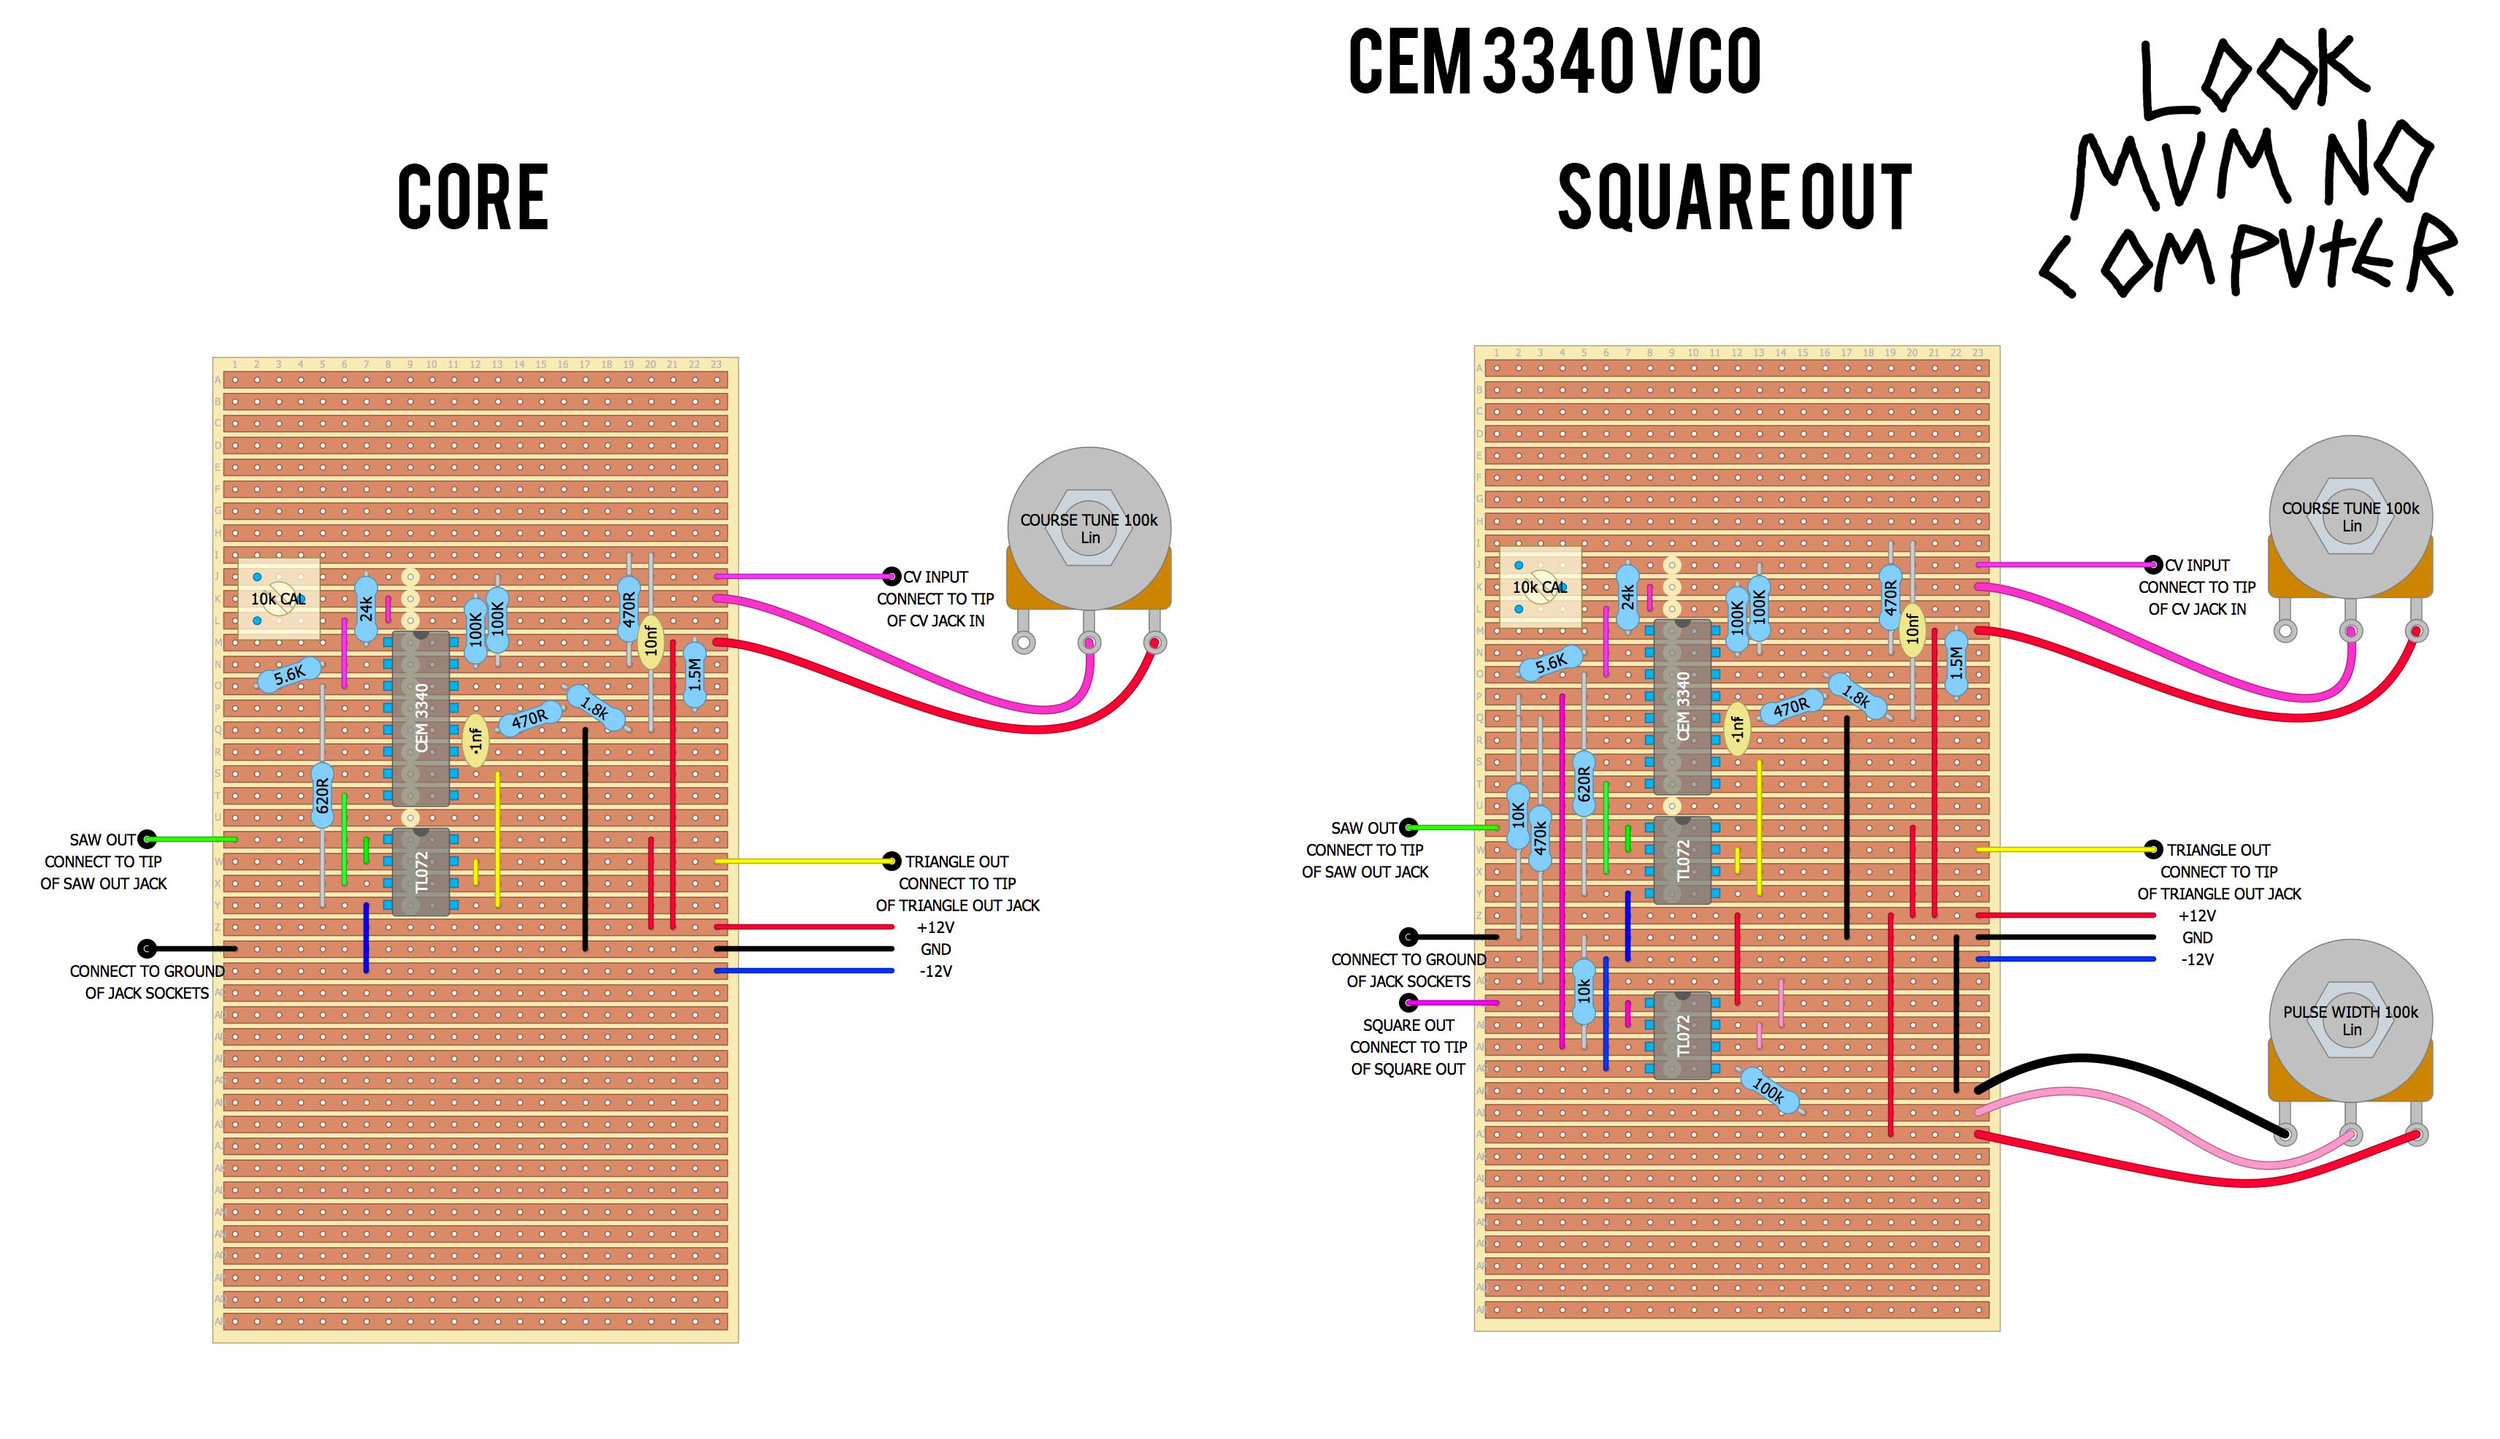 CEM 3340 square out